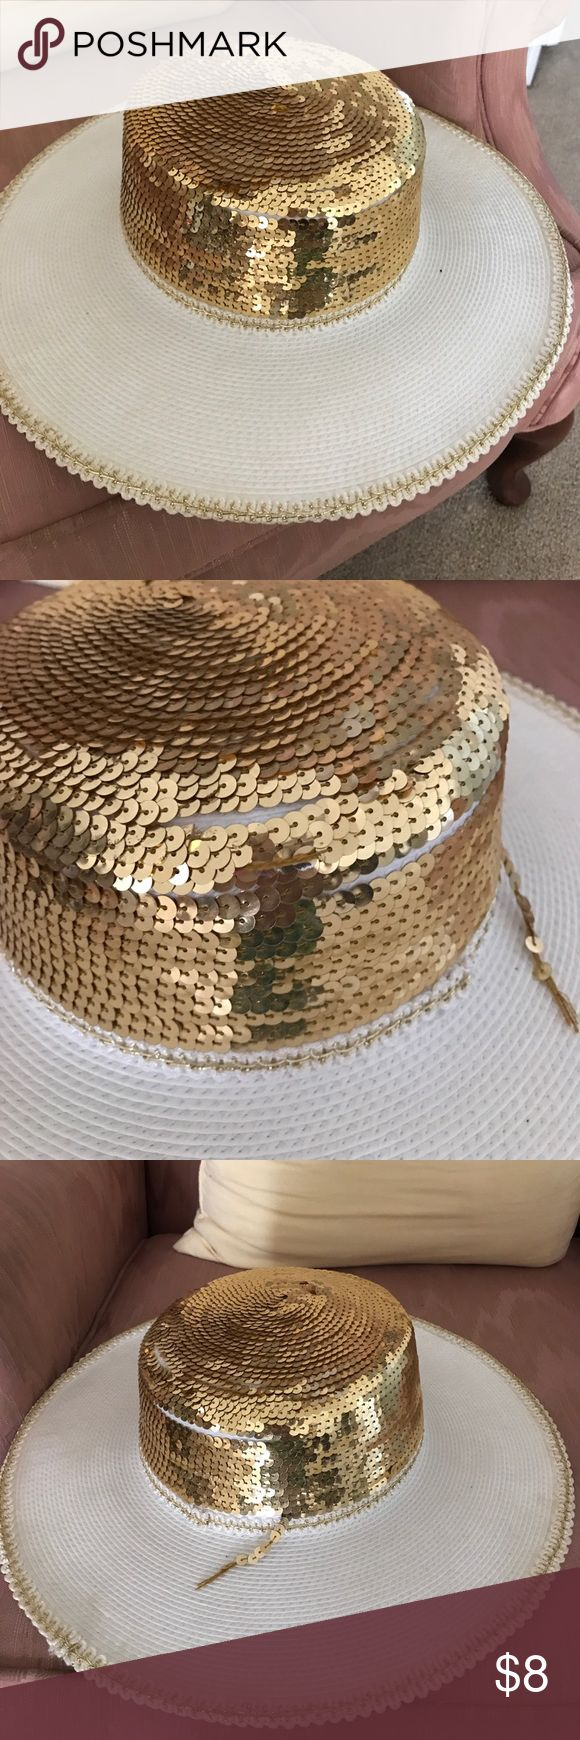 White and gold hat. White hate with gold sequins. In good condition. Had been worn. Some makeup is visible on the inside but none on outside. Very good condition! Accessories Hats